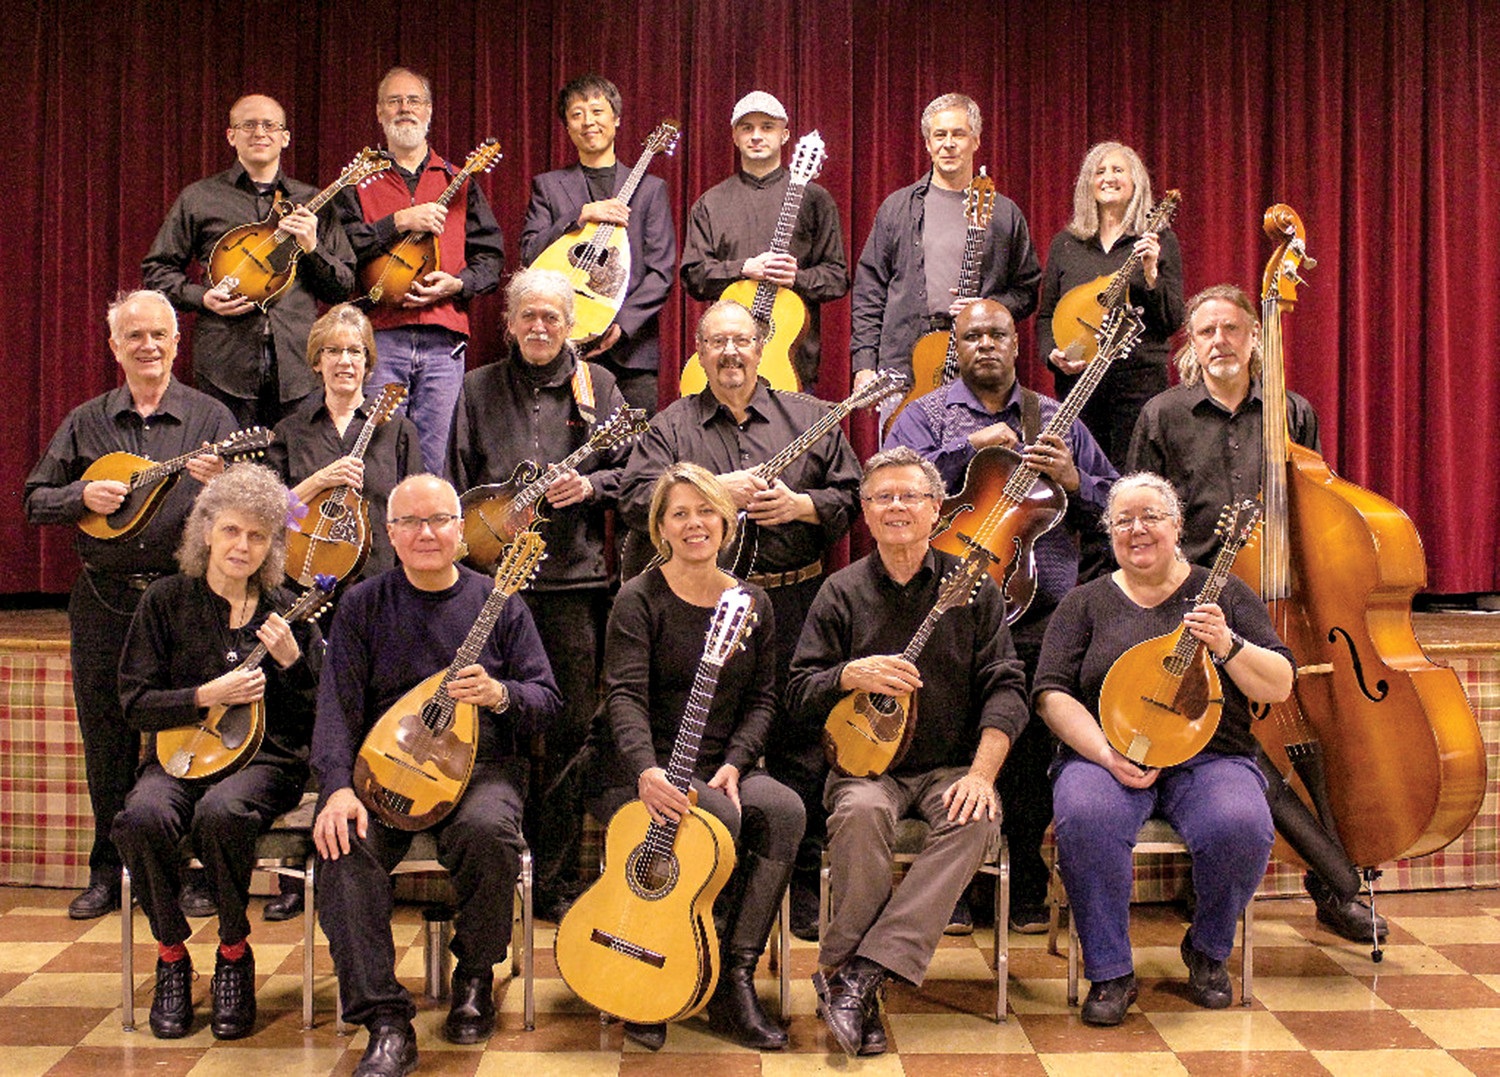 The Providence Mandolin Orchestra performs in the Arts in the Village Concert Series on Saturday, February 9